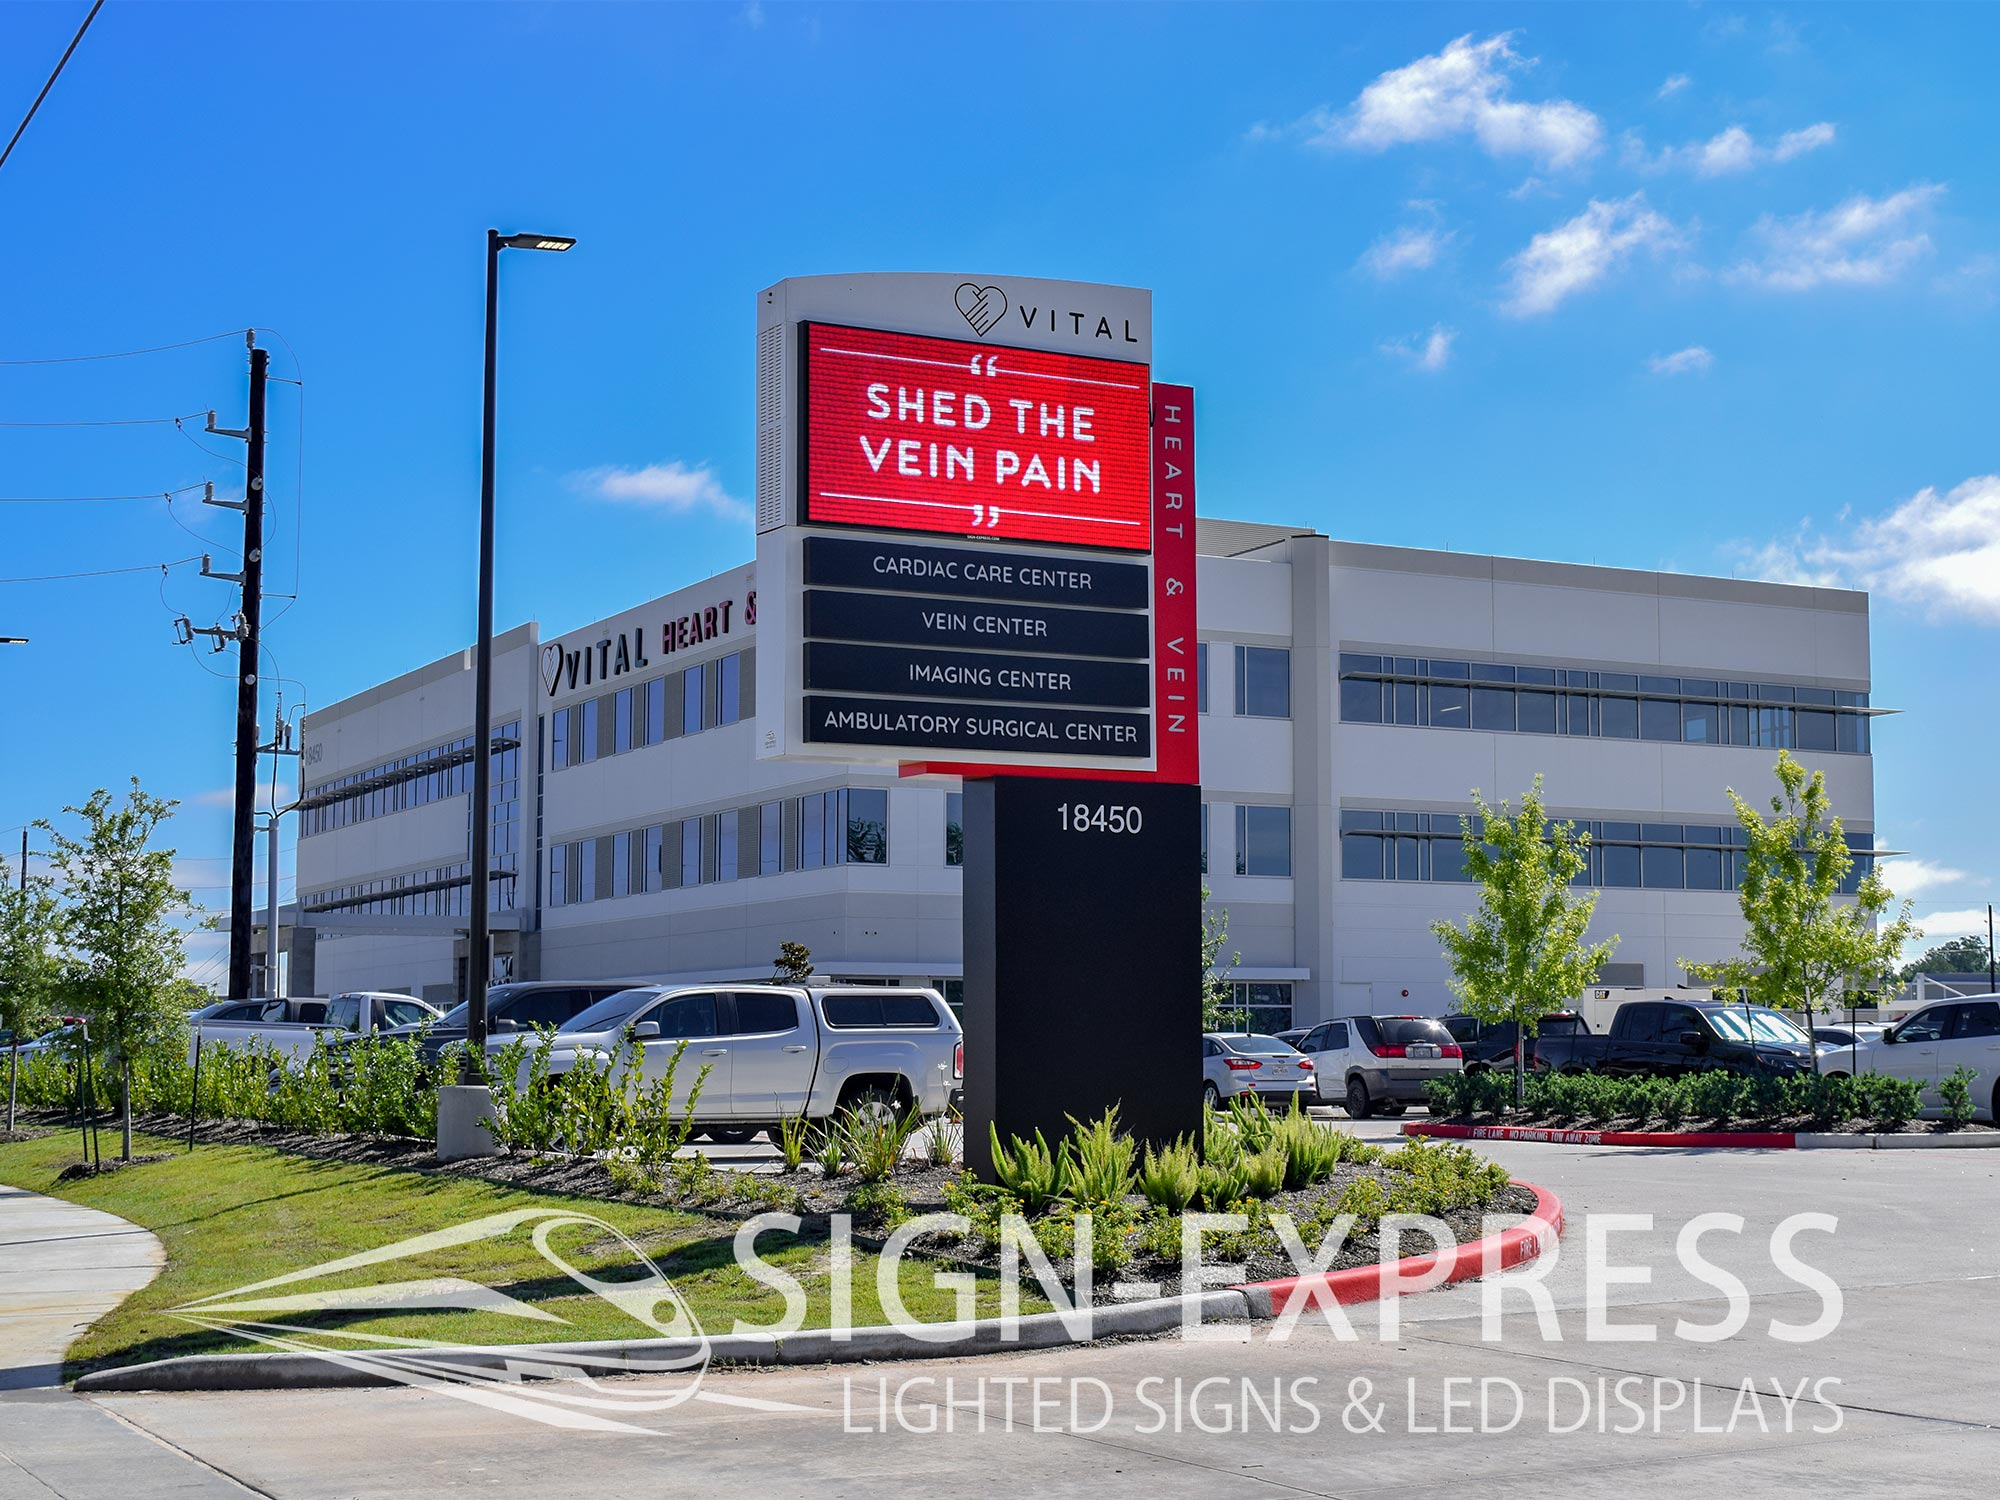 Vital Heart & Vein Medical Office Signage Solution – Humble, TX